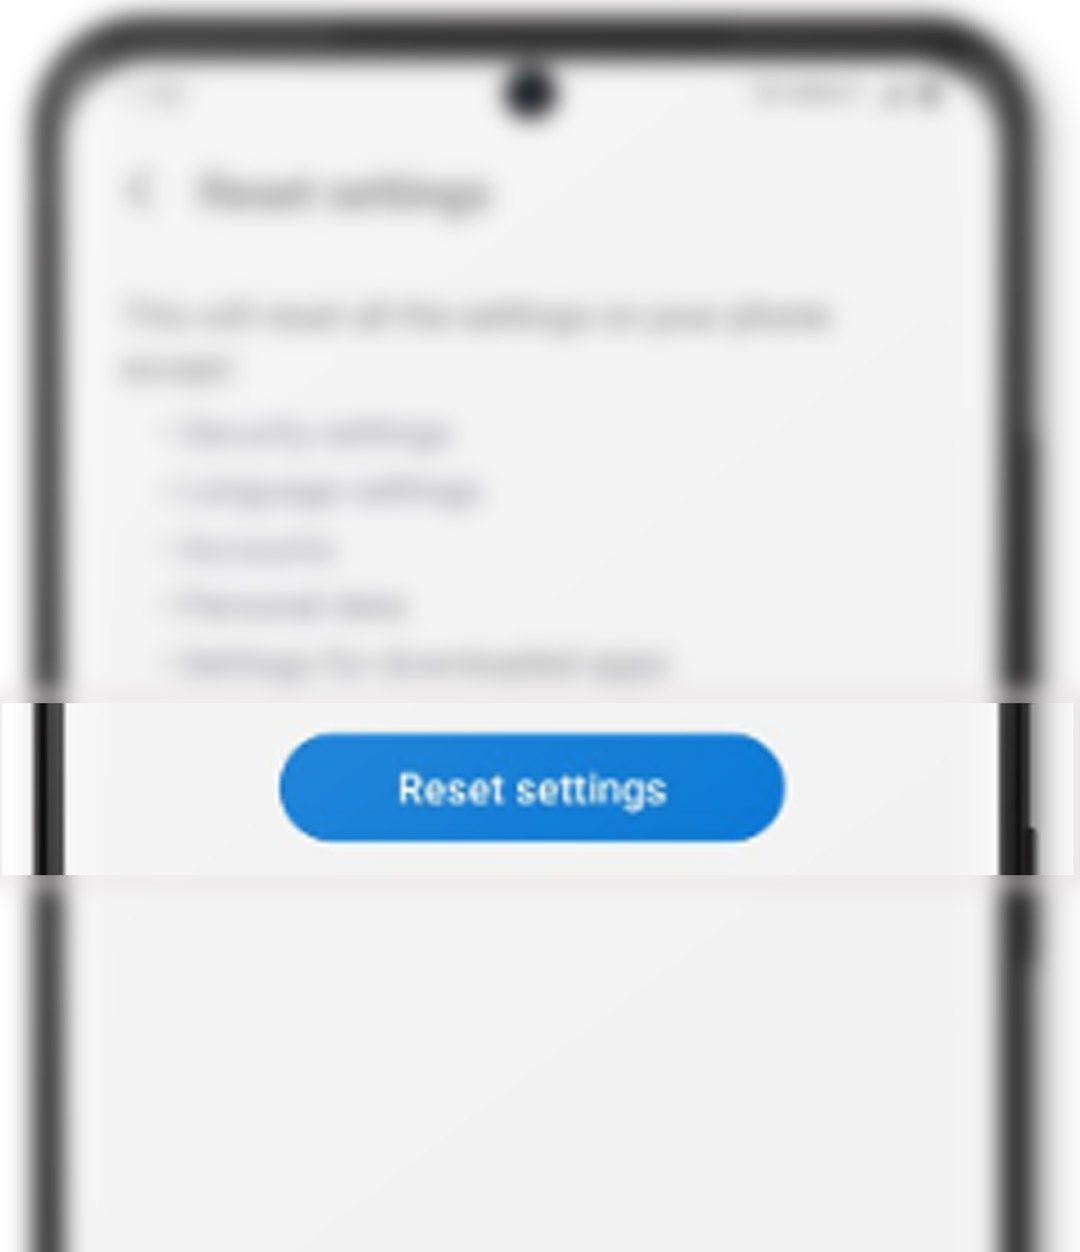 fix galaxy s20 overheating problem - reset settings